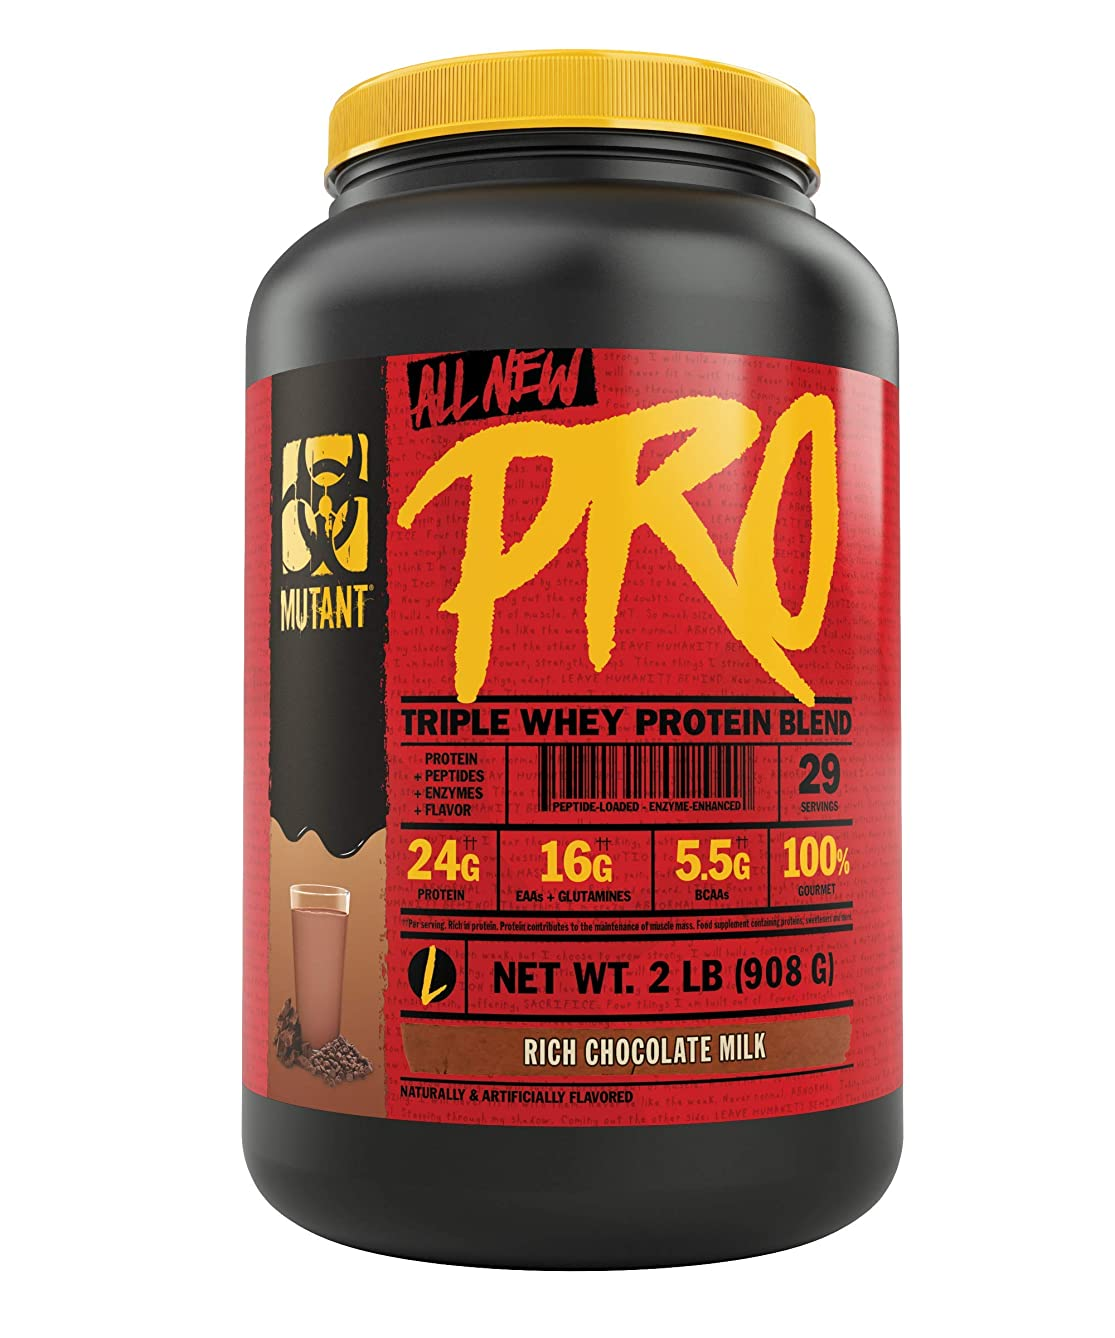 Mutant Pro – Triple Whey Protein Powder Supplement, Time-Released for Enhanced Amino Acid Absorption, Decadent Gourmet Flavors, 2lb - Rich Chocolate Milk